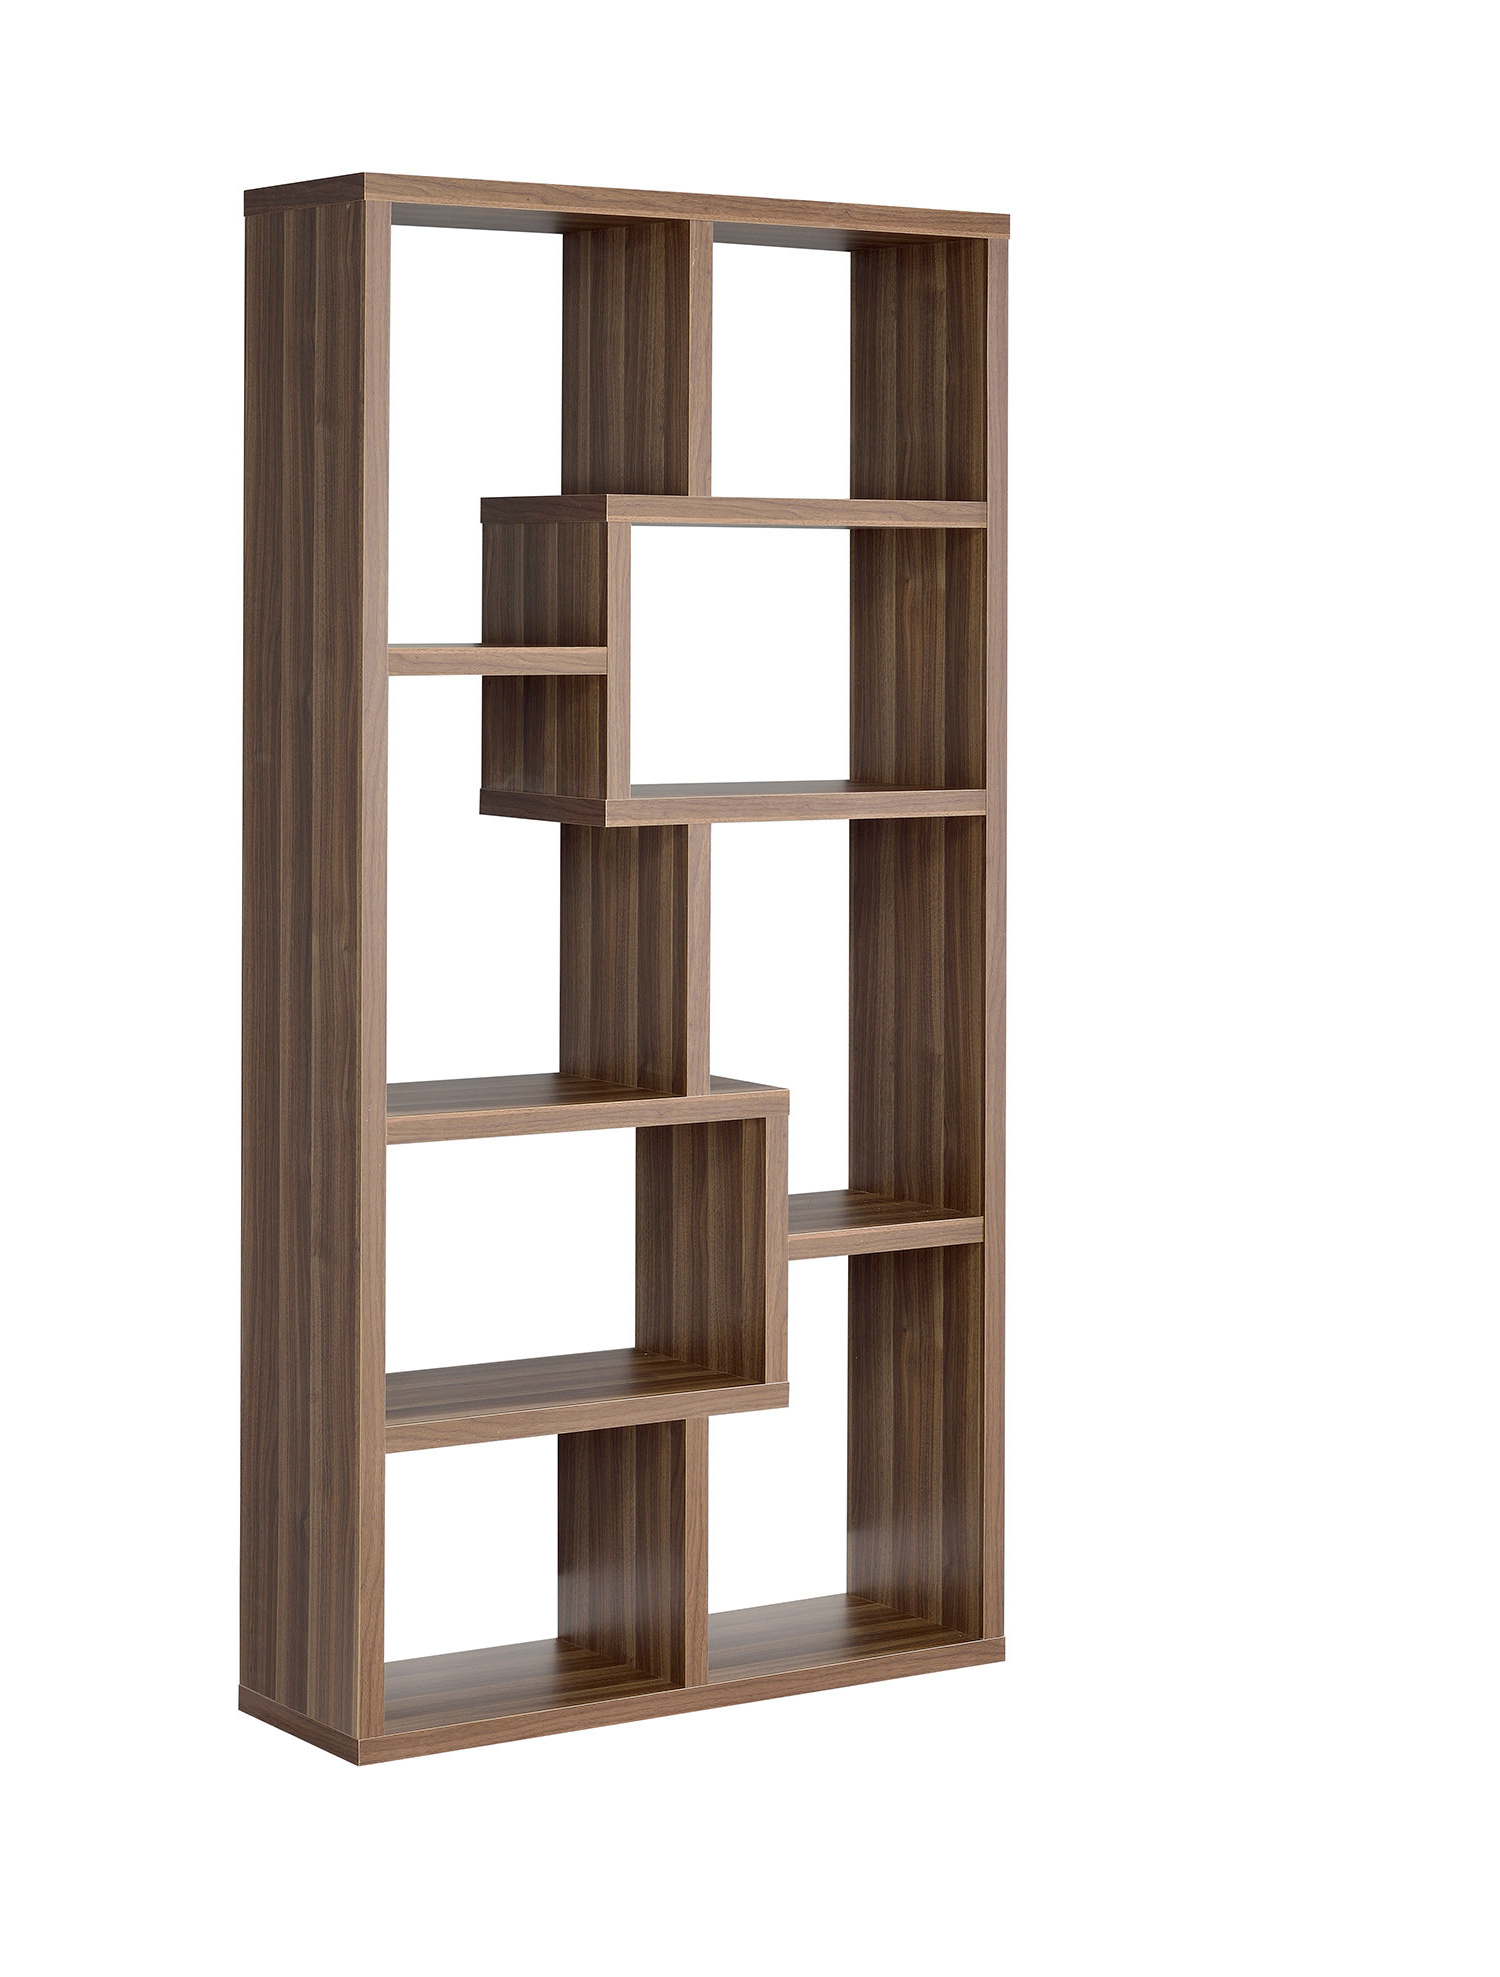 Current Chantilly Geometric Bookcases Intended For Flavius Geometric Bookcase (Gallery 7 of 20)